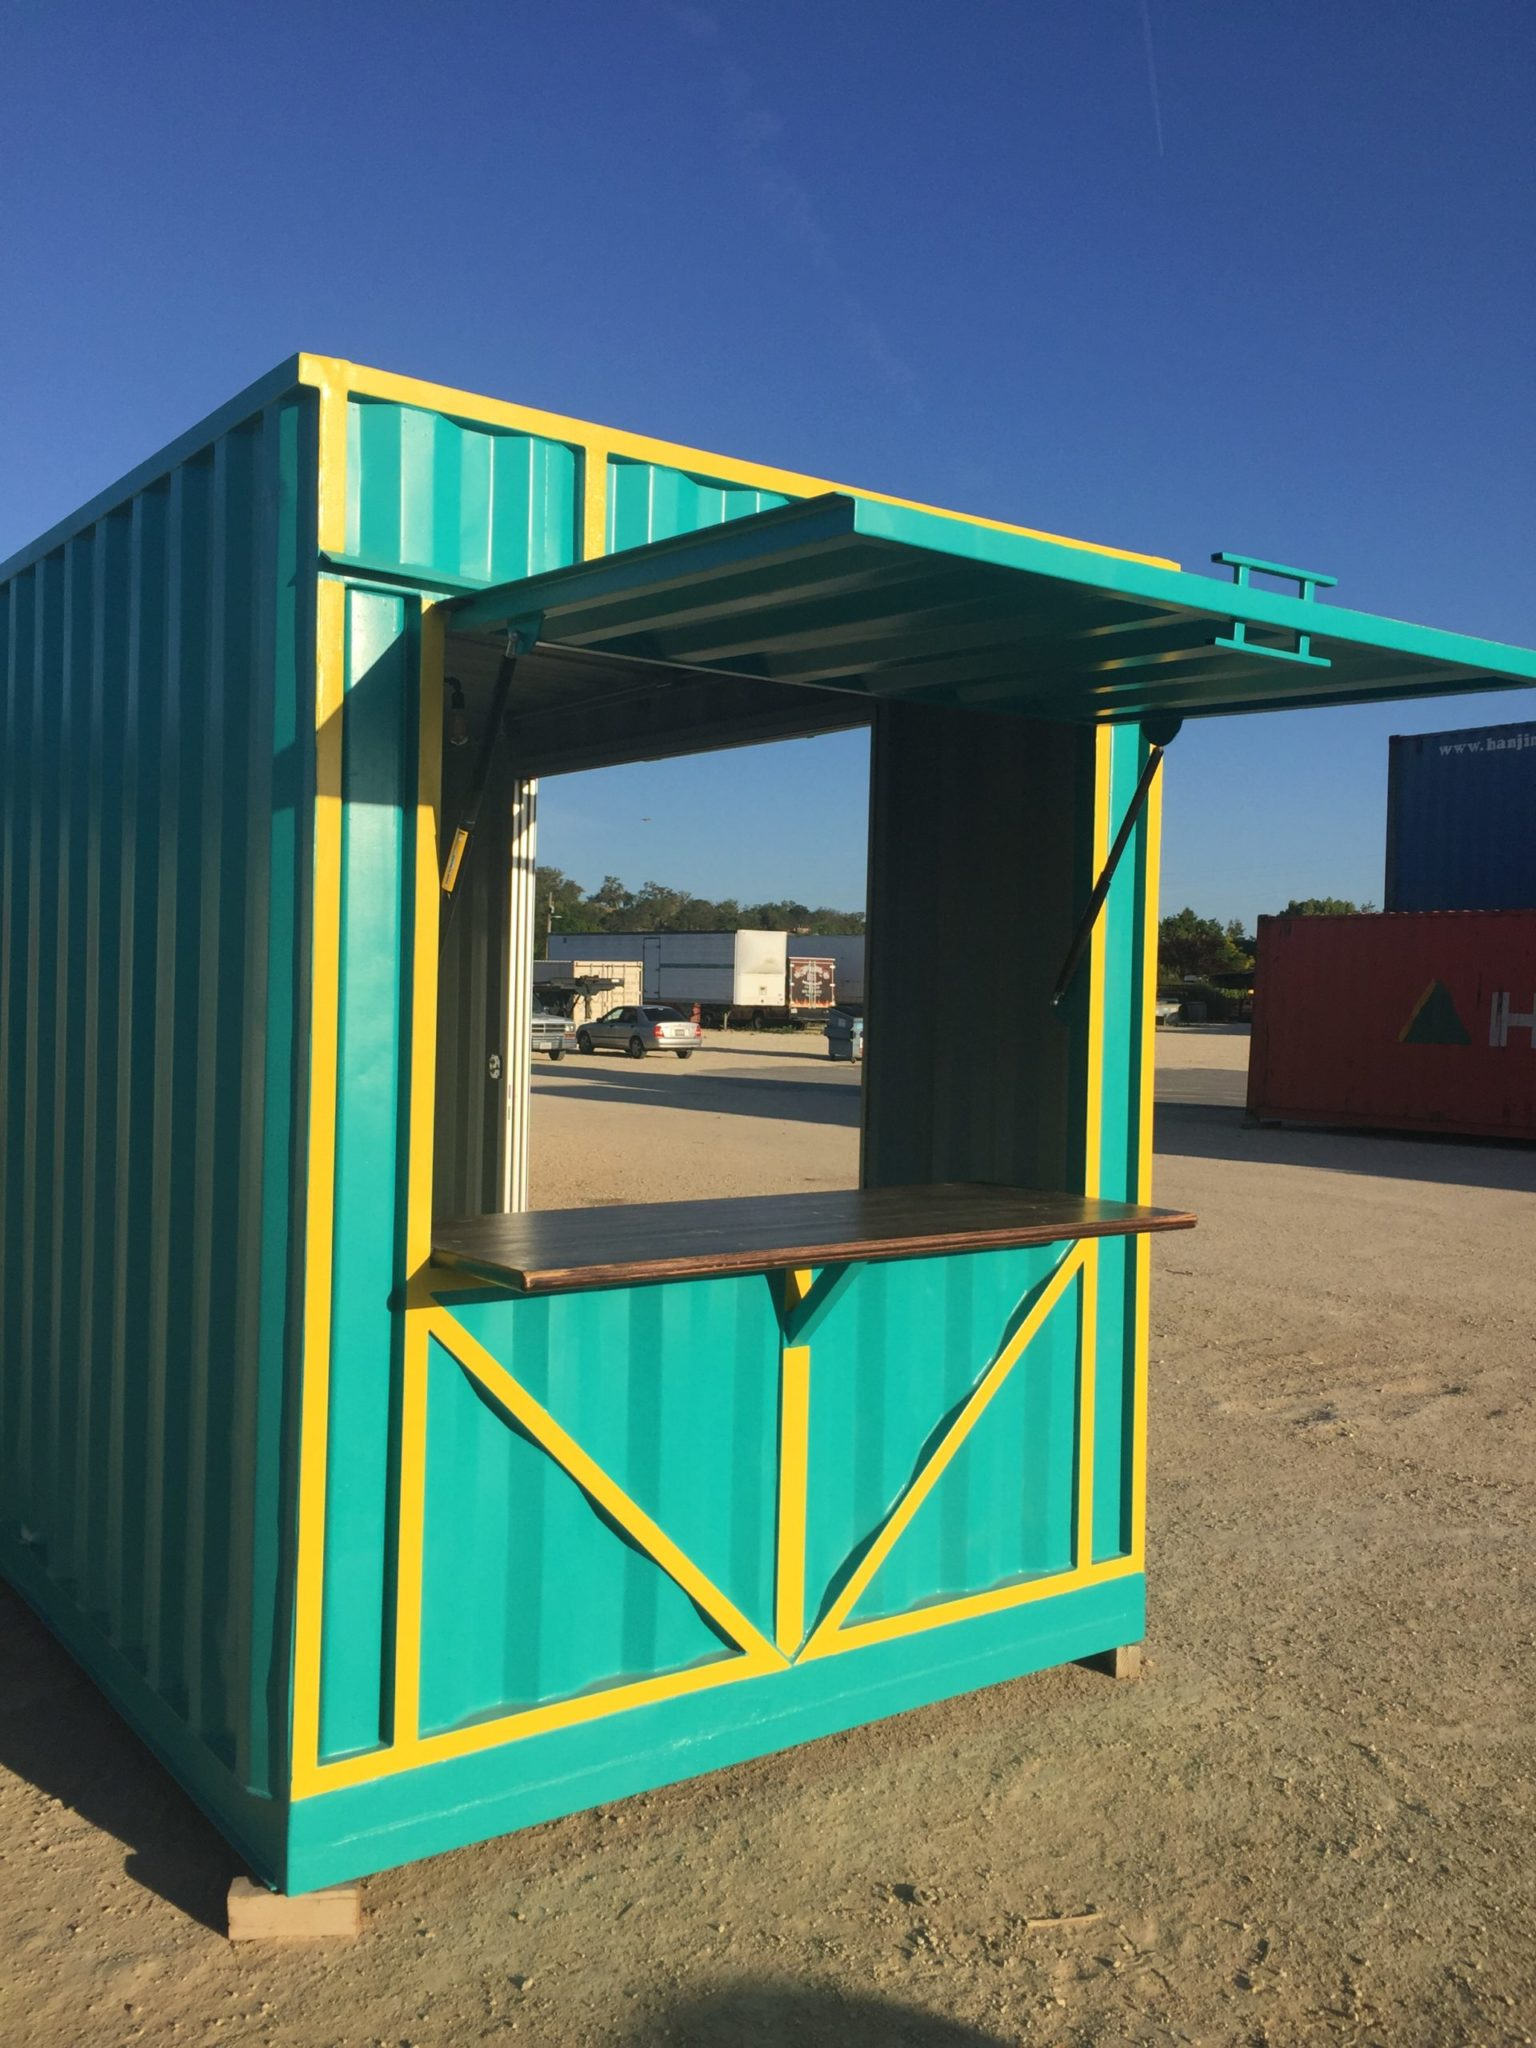 Shipping Container used as Concession Stand